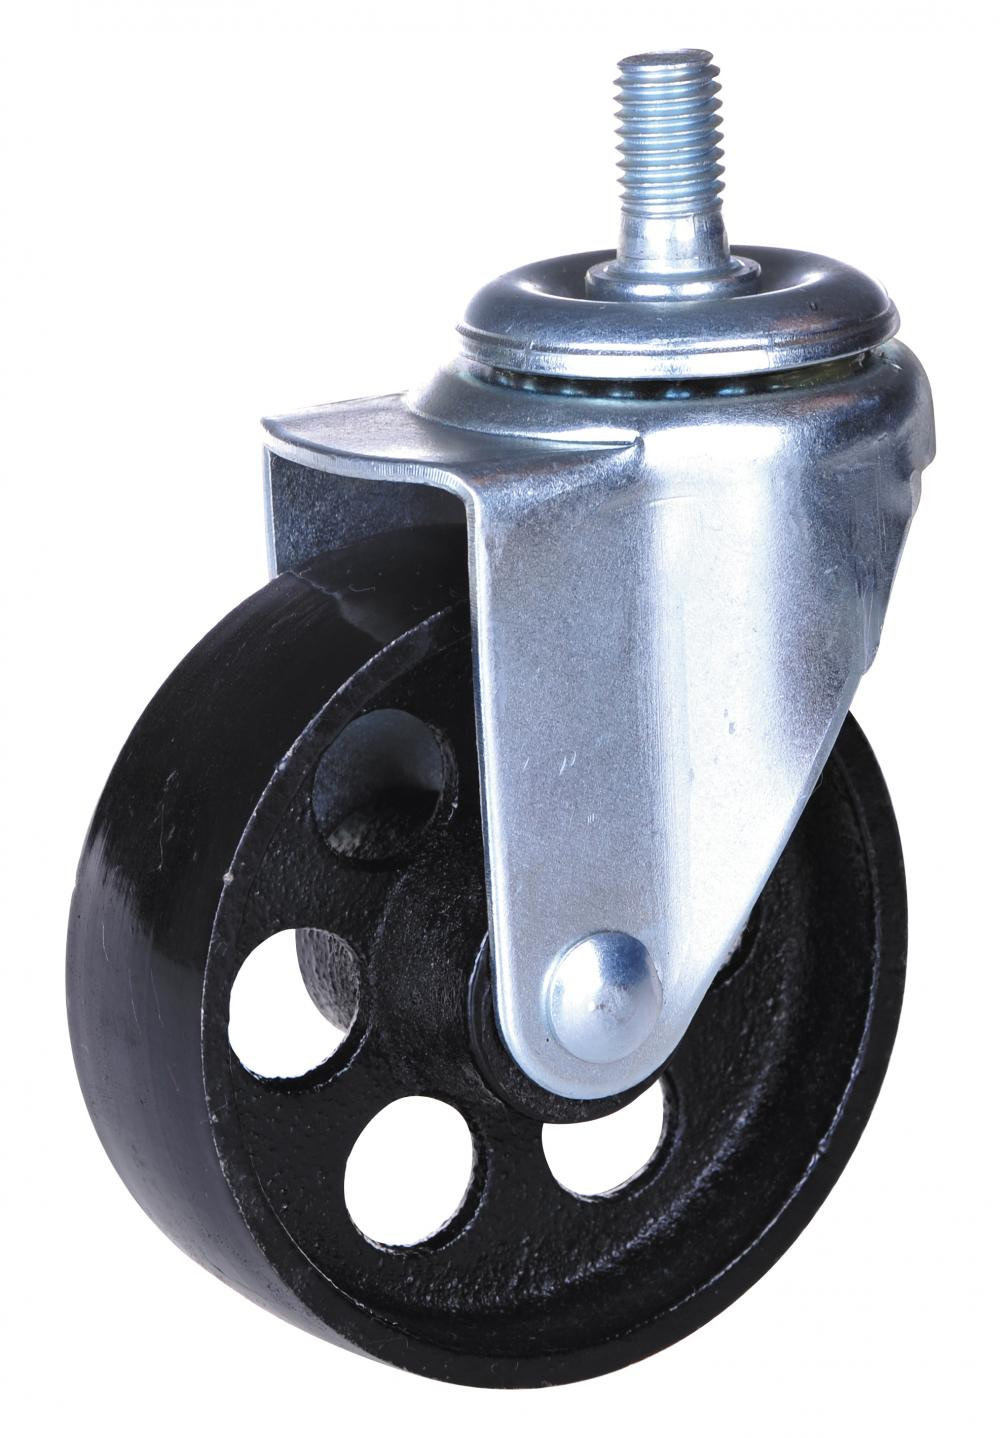 3incn swivel caster with iron wheel with brake